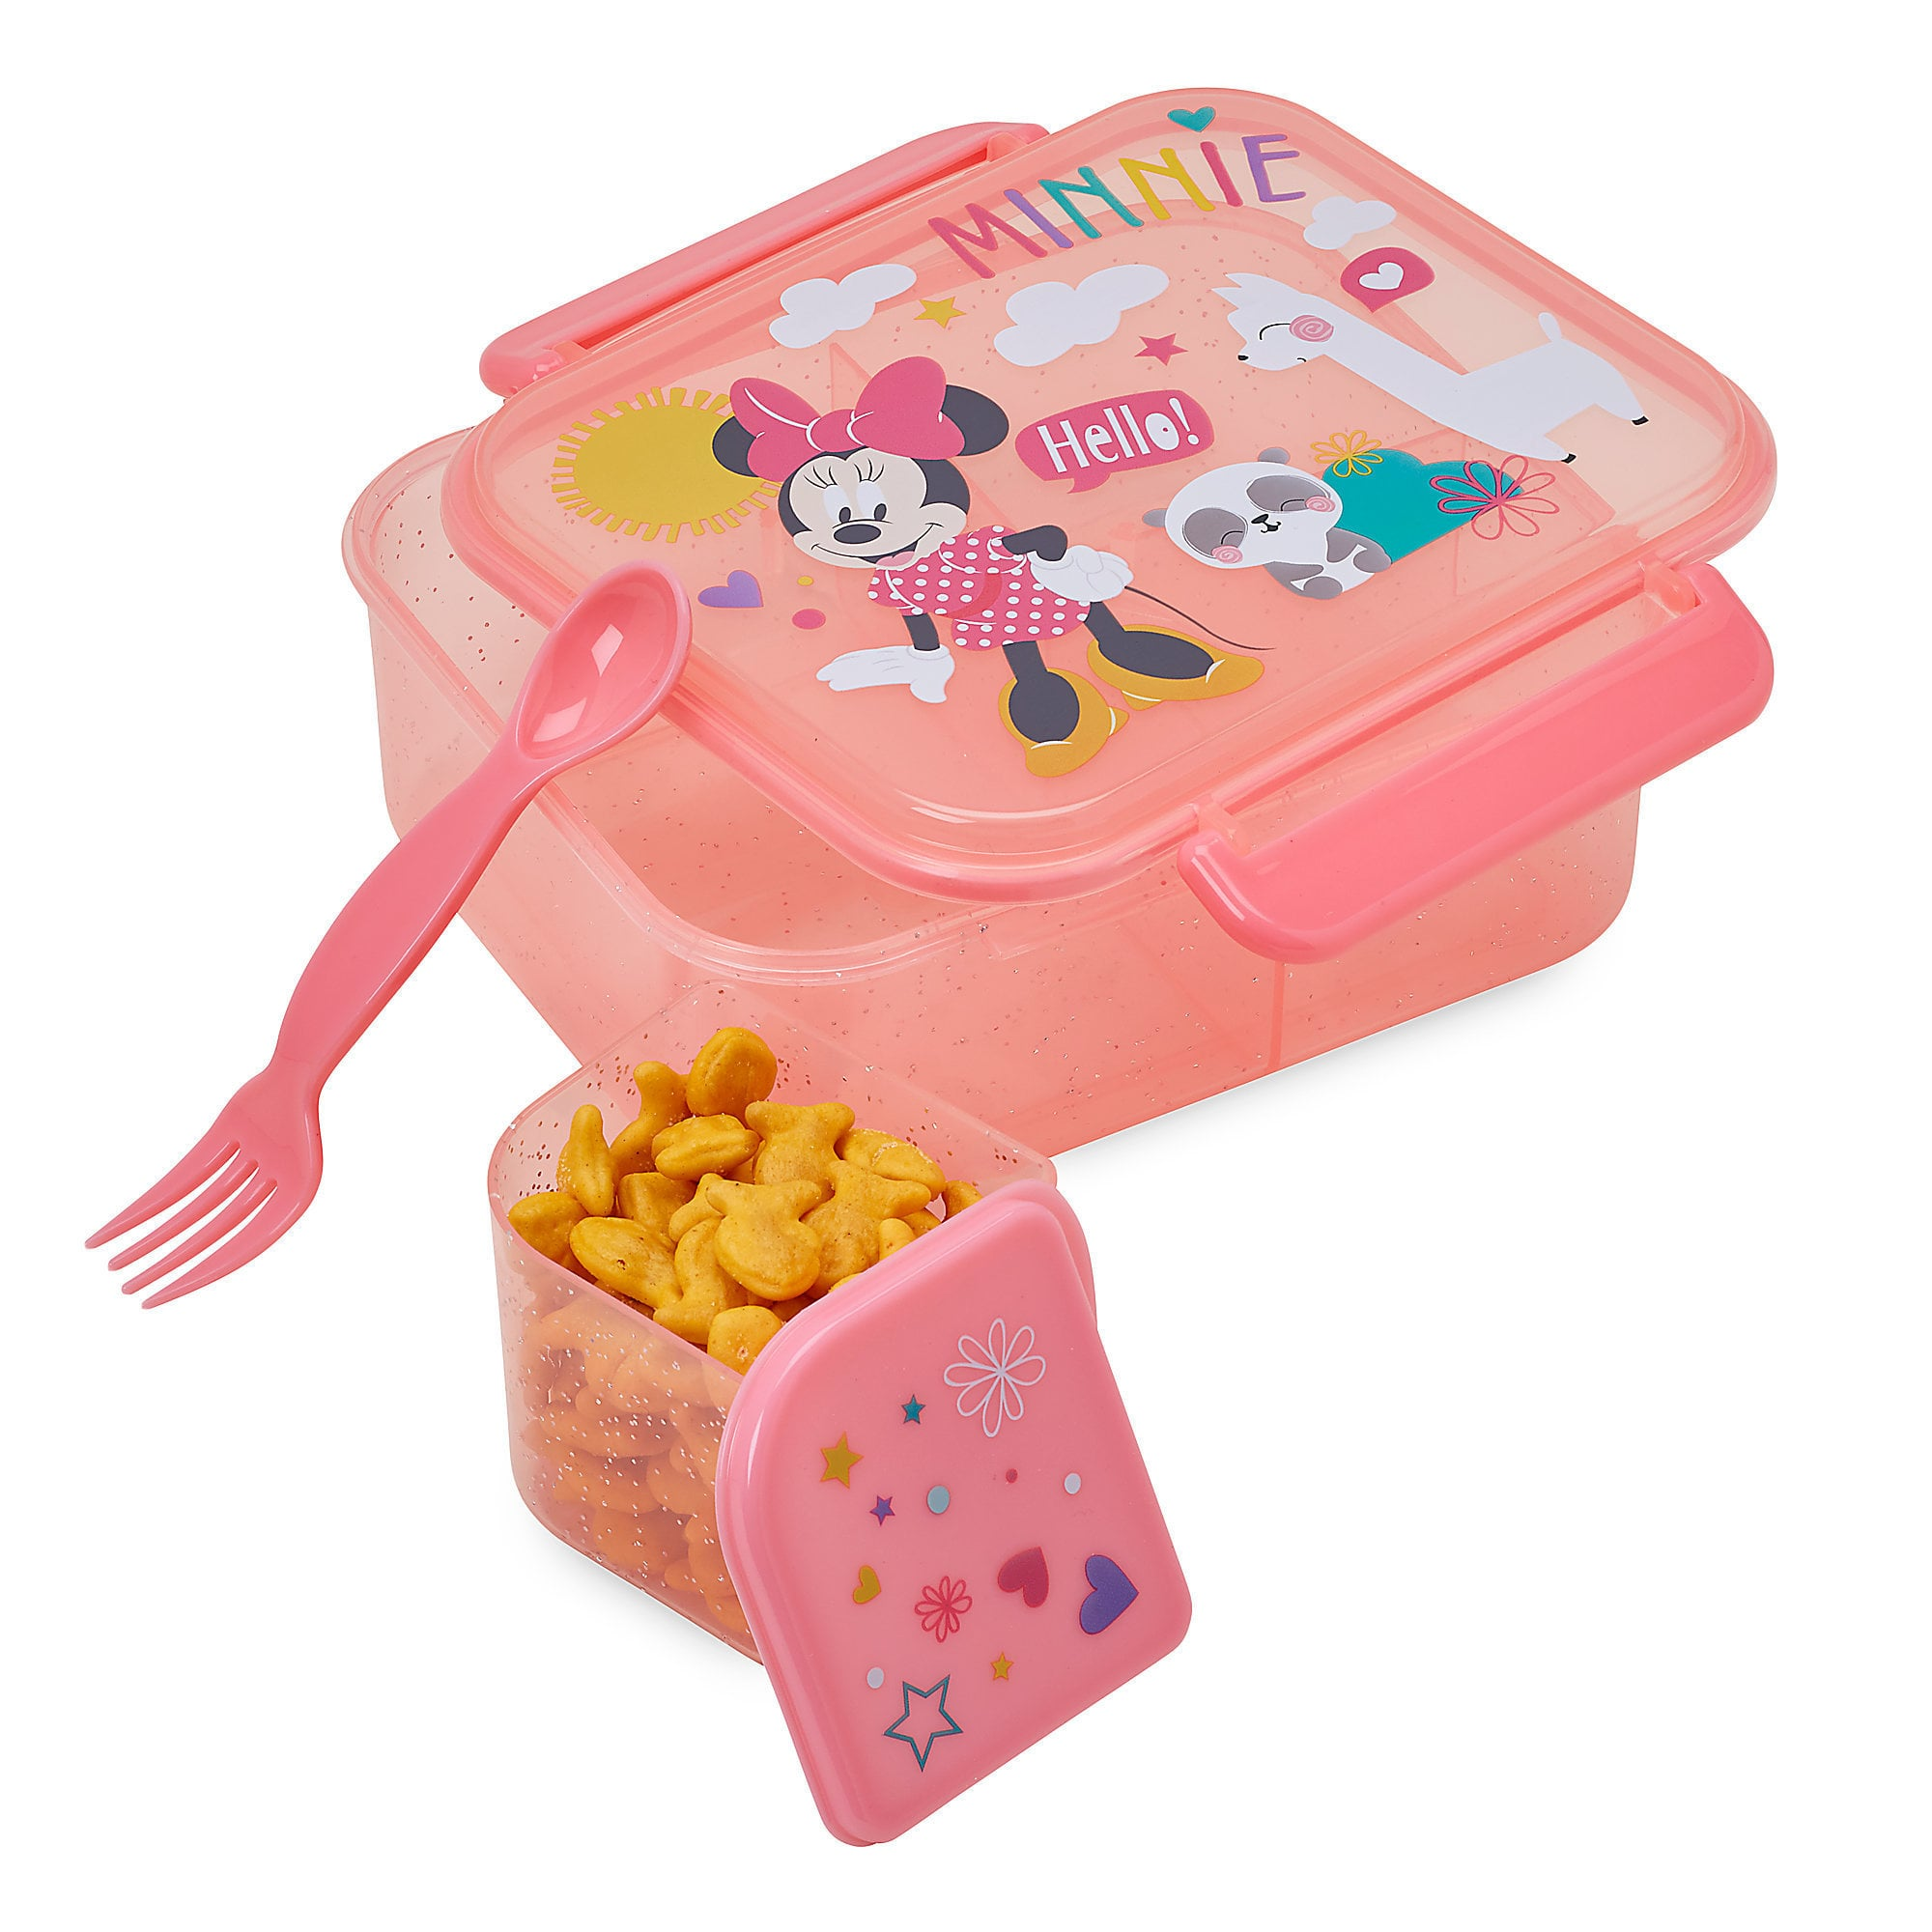 This Minnie Mouse food storage set is perfect for Disneyland with kids | Top 25 Disney Gift Ideas for Toddlers featured by top US Disney blogger, Marcie and the Mouse